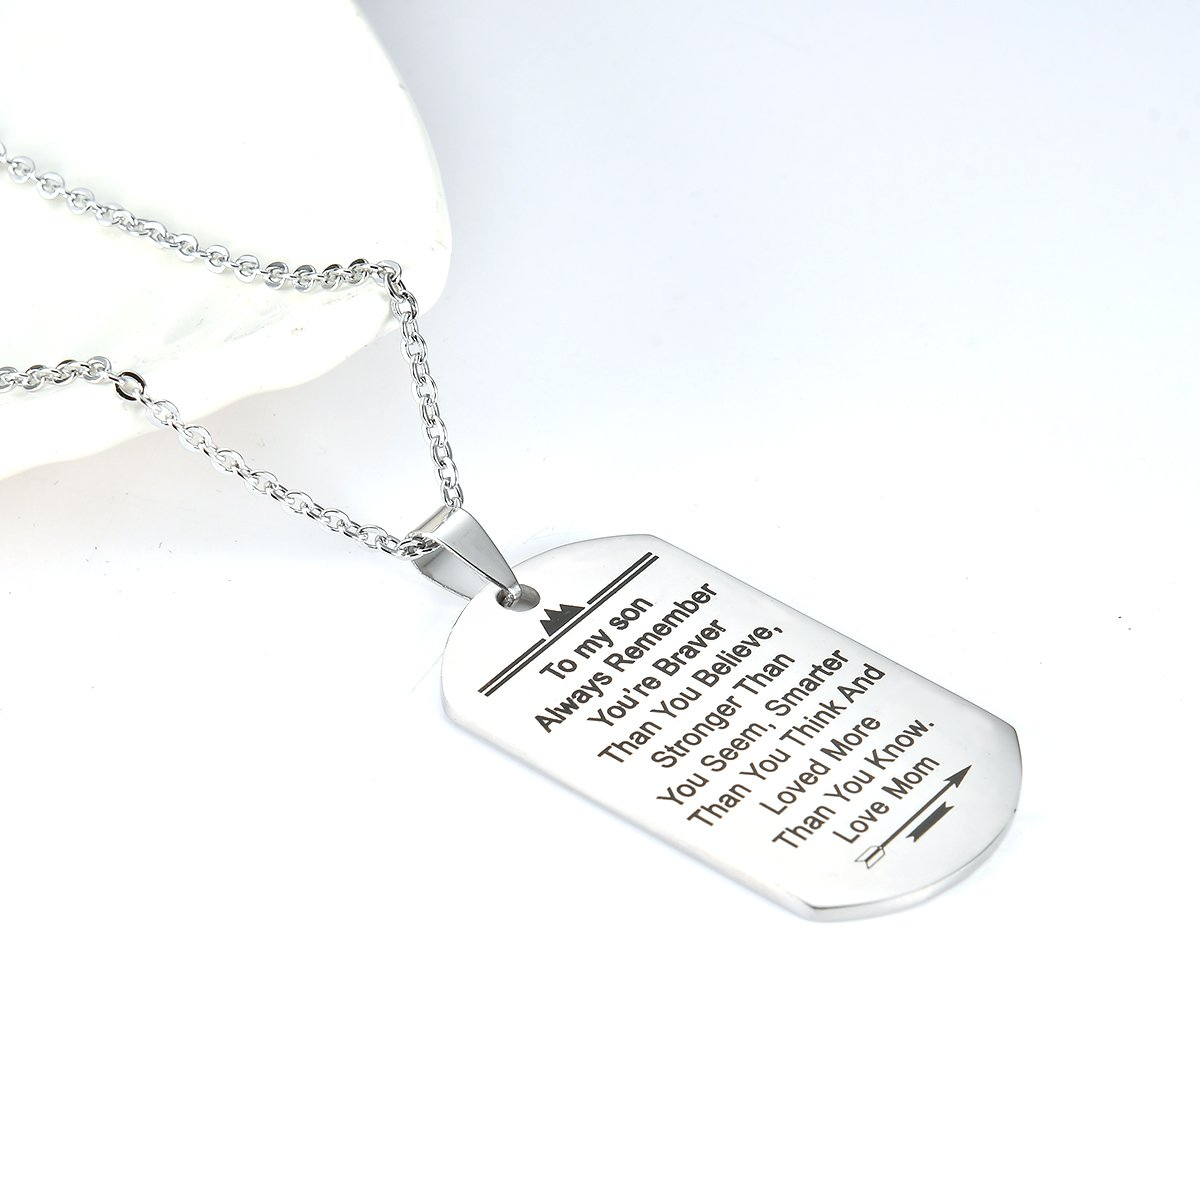 Stainless Steel Dog Tag Letters ''To my son....love mom'' Pendant Necklace,Inspirational Gifts For Son Jewelry by danjie (Image #3)